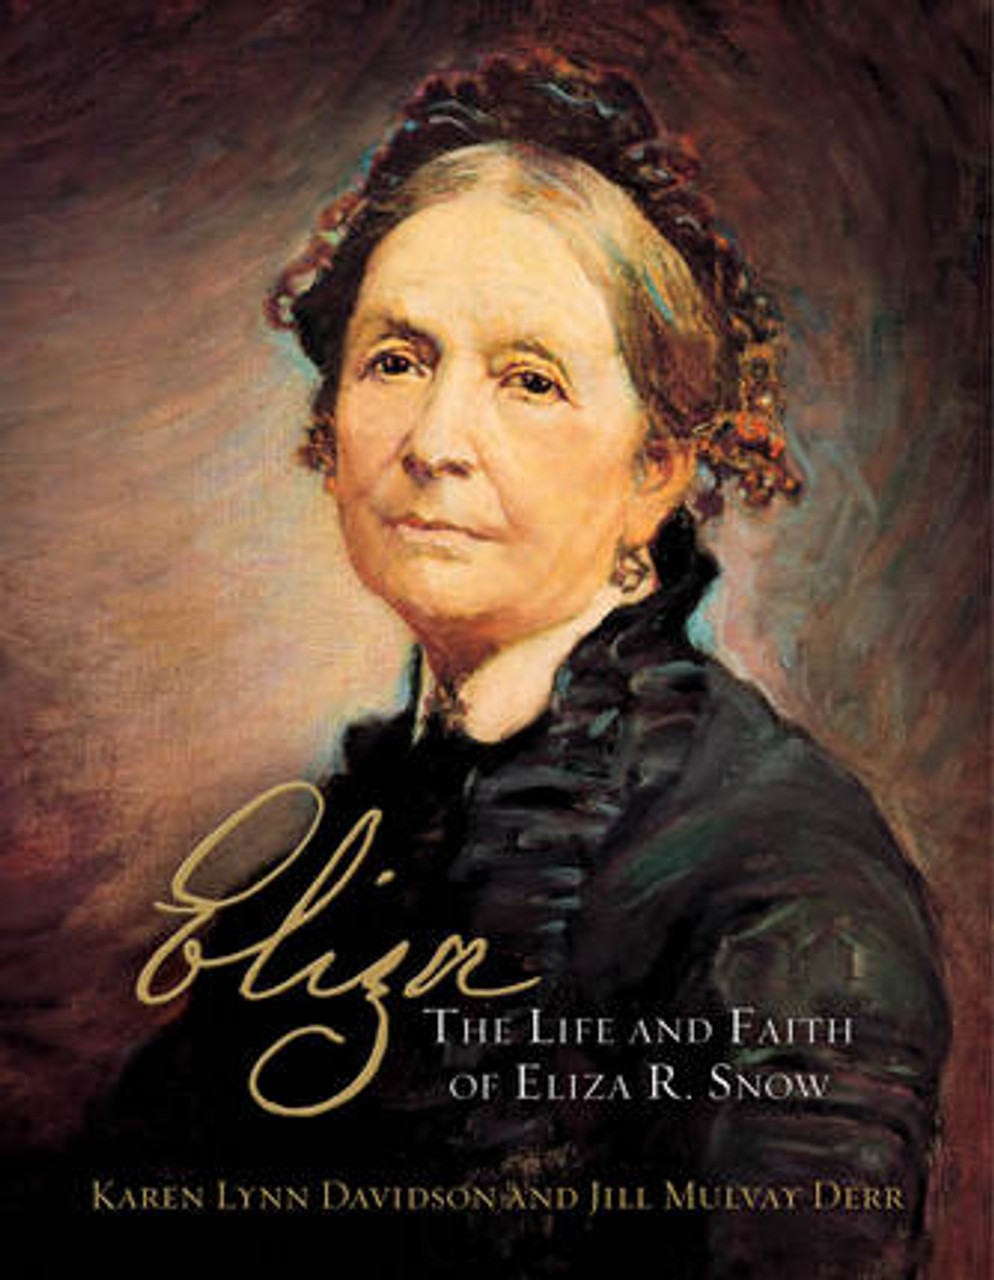 Eliza The Life and Faith of Eliza R. Snow (Hardcover) *